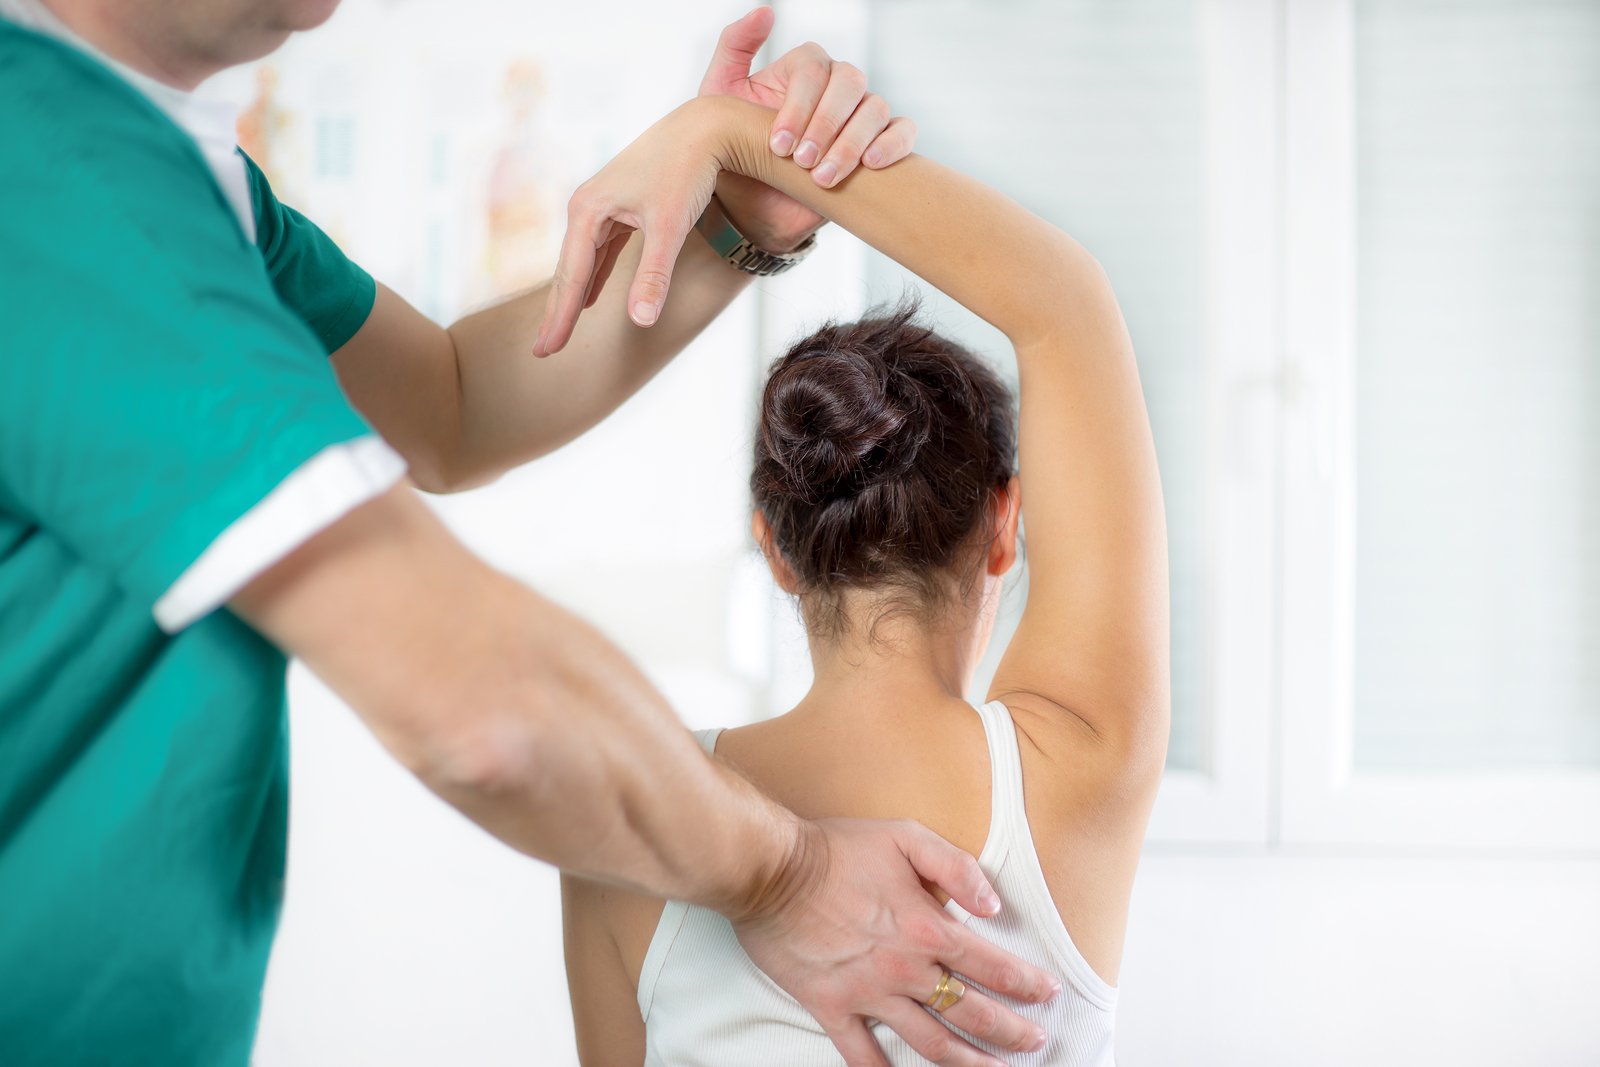 Chiropractic Services in New Albany